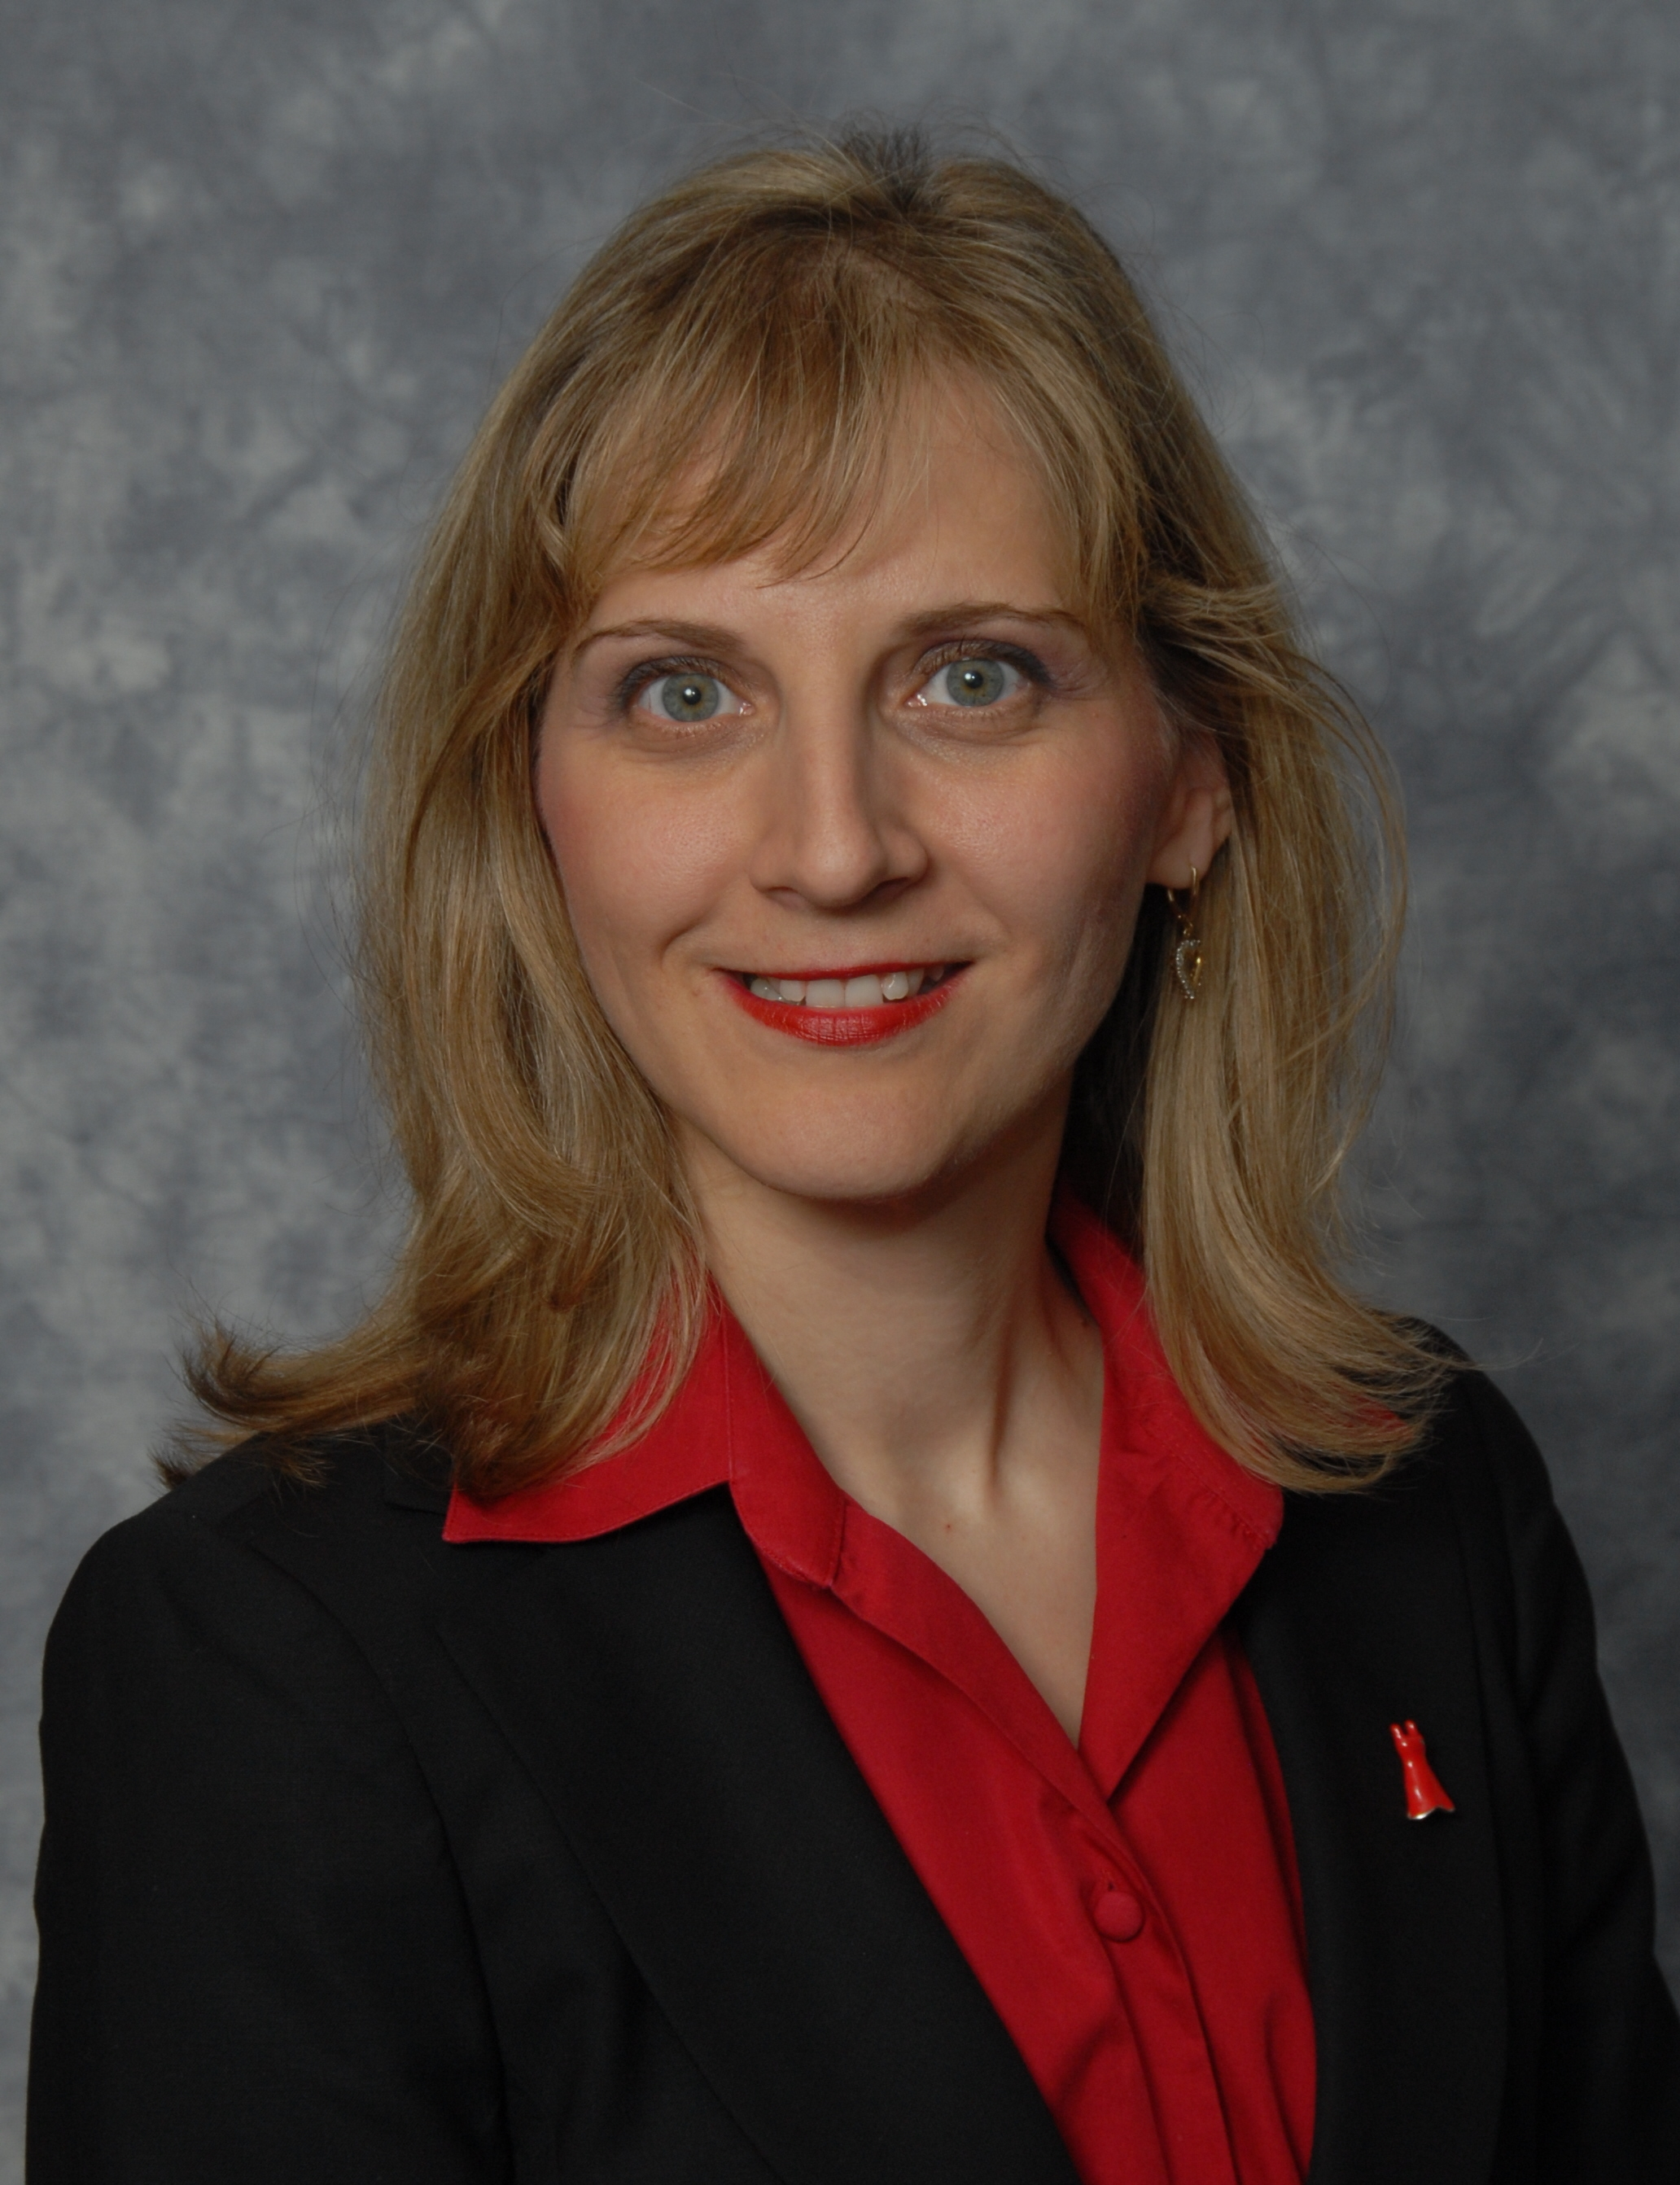 Photo of Karla M. Kurrelmeyer